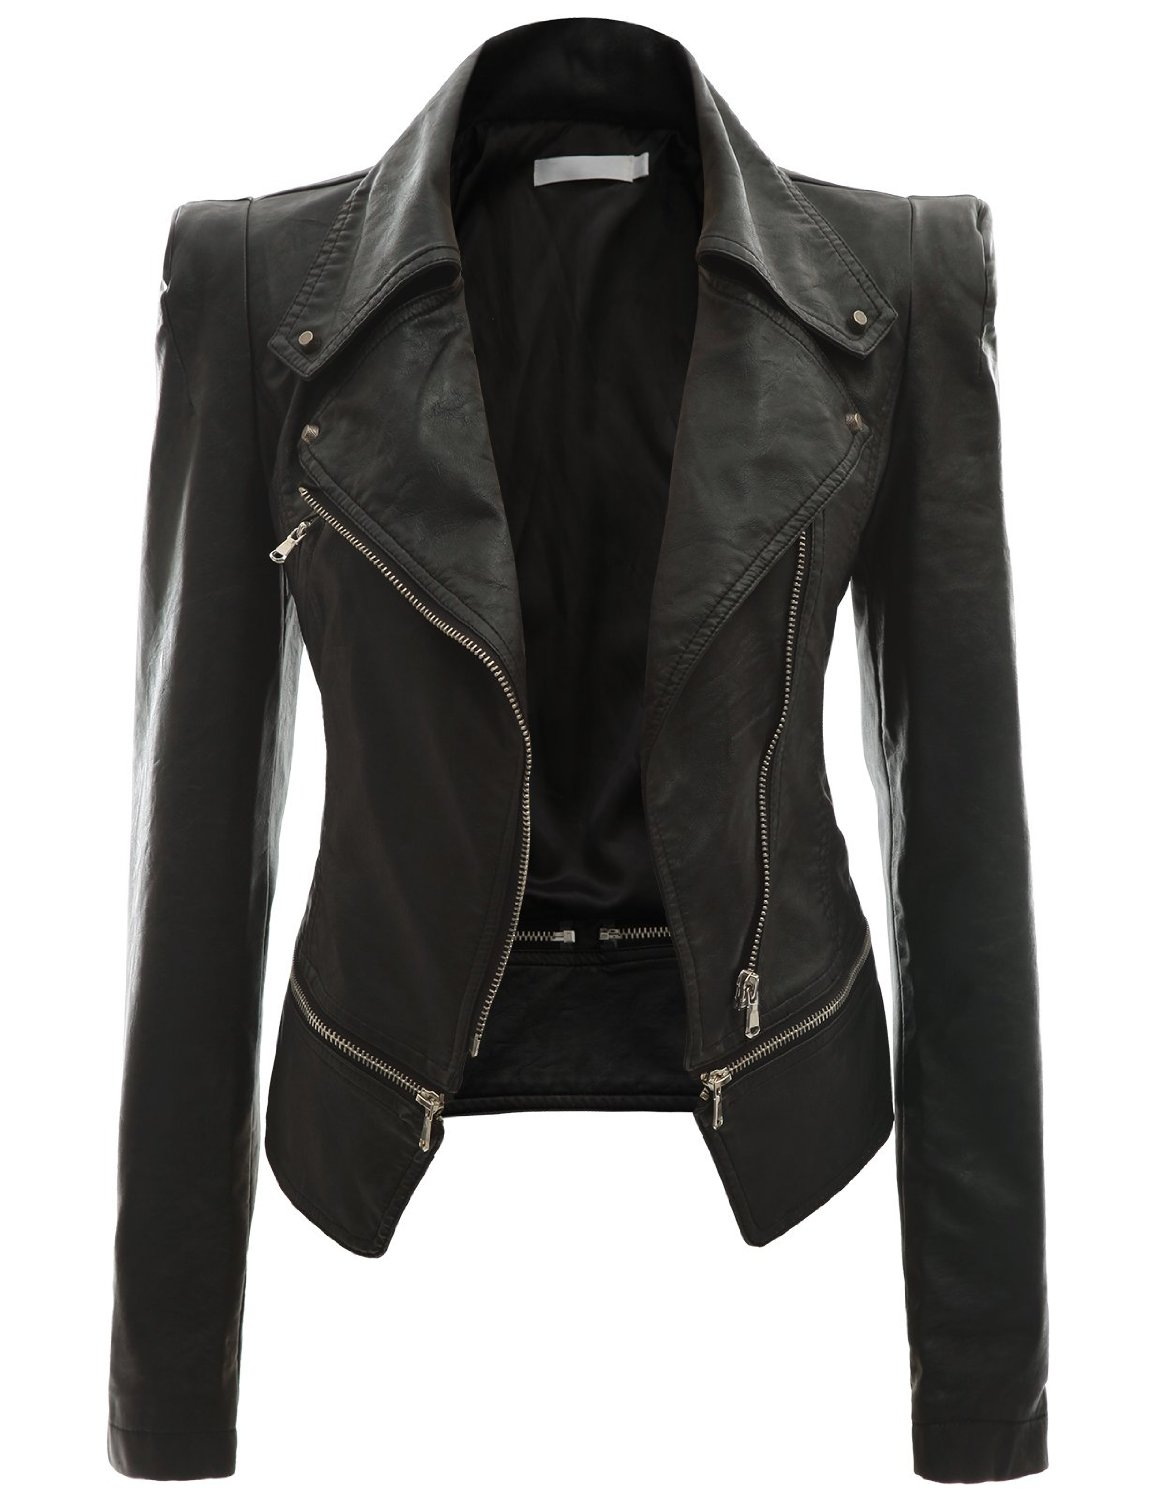 See all results for womens black leather jacket. Top Rated from Our Brands See more. Otterline. Our Brand. Otterline Women's Washable PU Slim-Fit Moto Jacket. $ $ 49 00 Prime. out of 5 stars Tanming Women's Faux Leather Moto Biker Short Coat Jacket. by Tanming. $ $ 39 99 Prime.